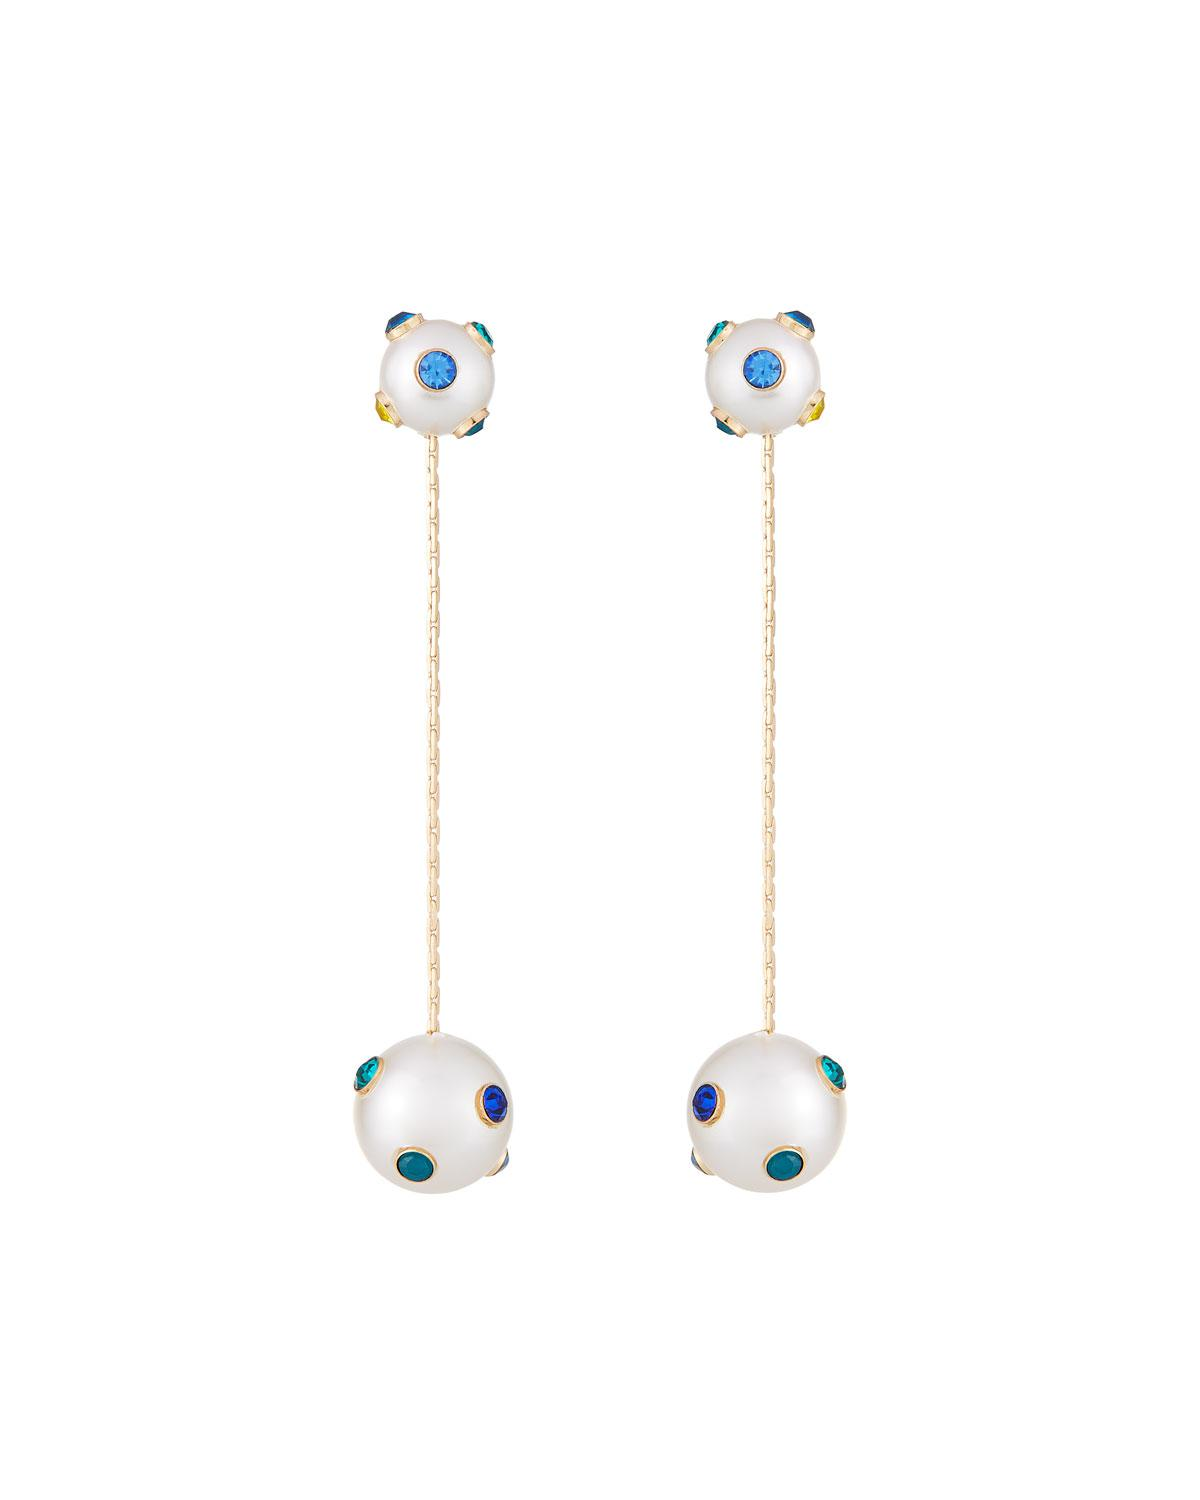 Lydell Nyc Pearly Dangle Earrings w/ Crystals LqqERVAcU